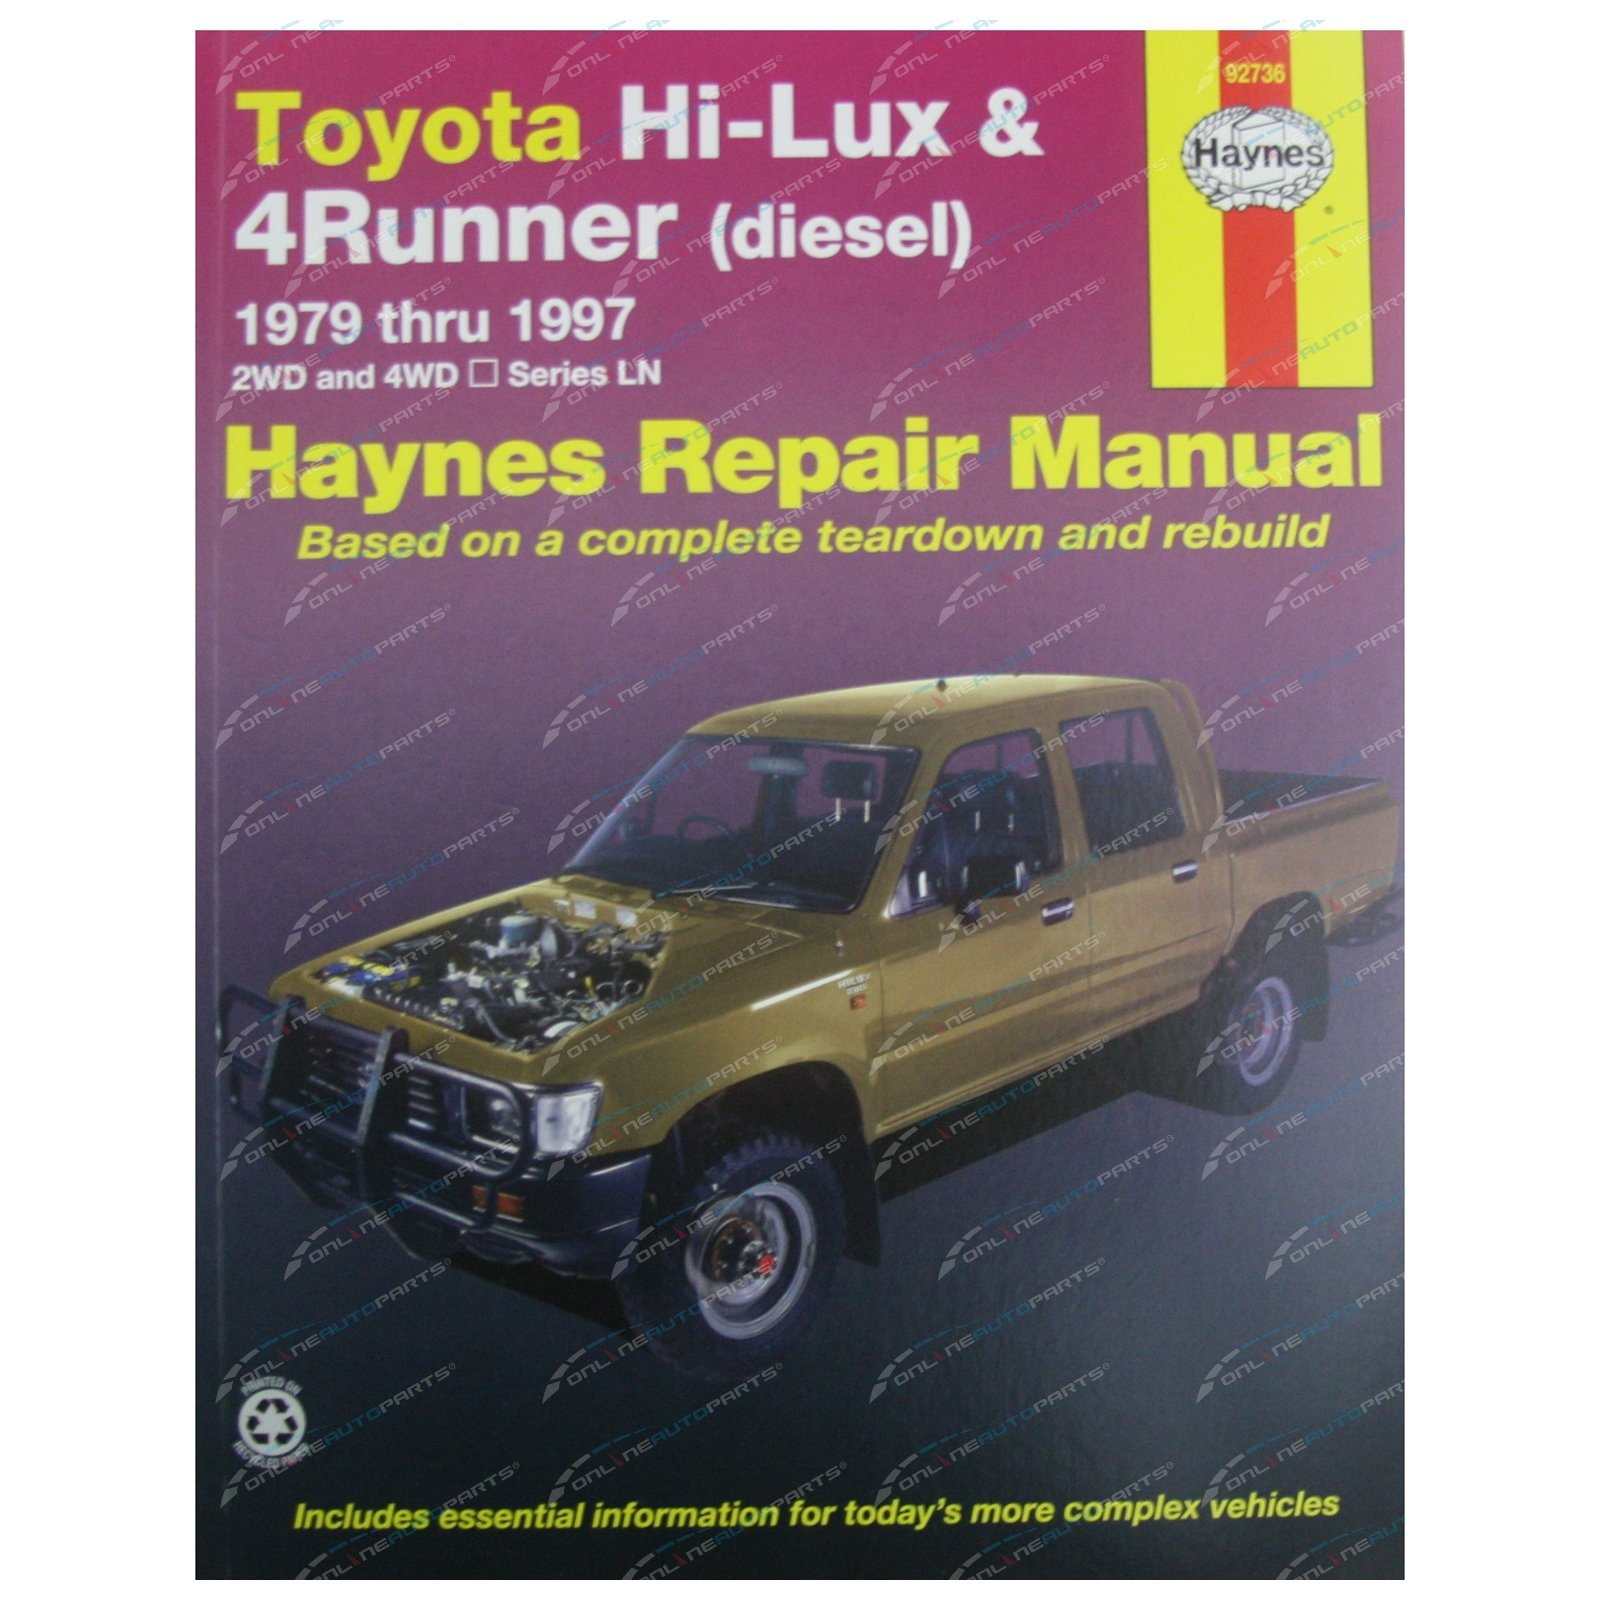 Haynes Car Repair Manual Book Diesel suits Hilux 1979-97 Toyota 2wd + 4wd  Ute